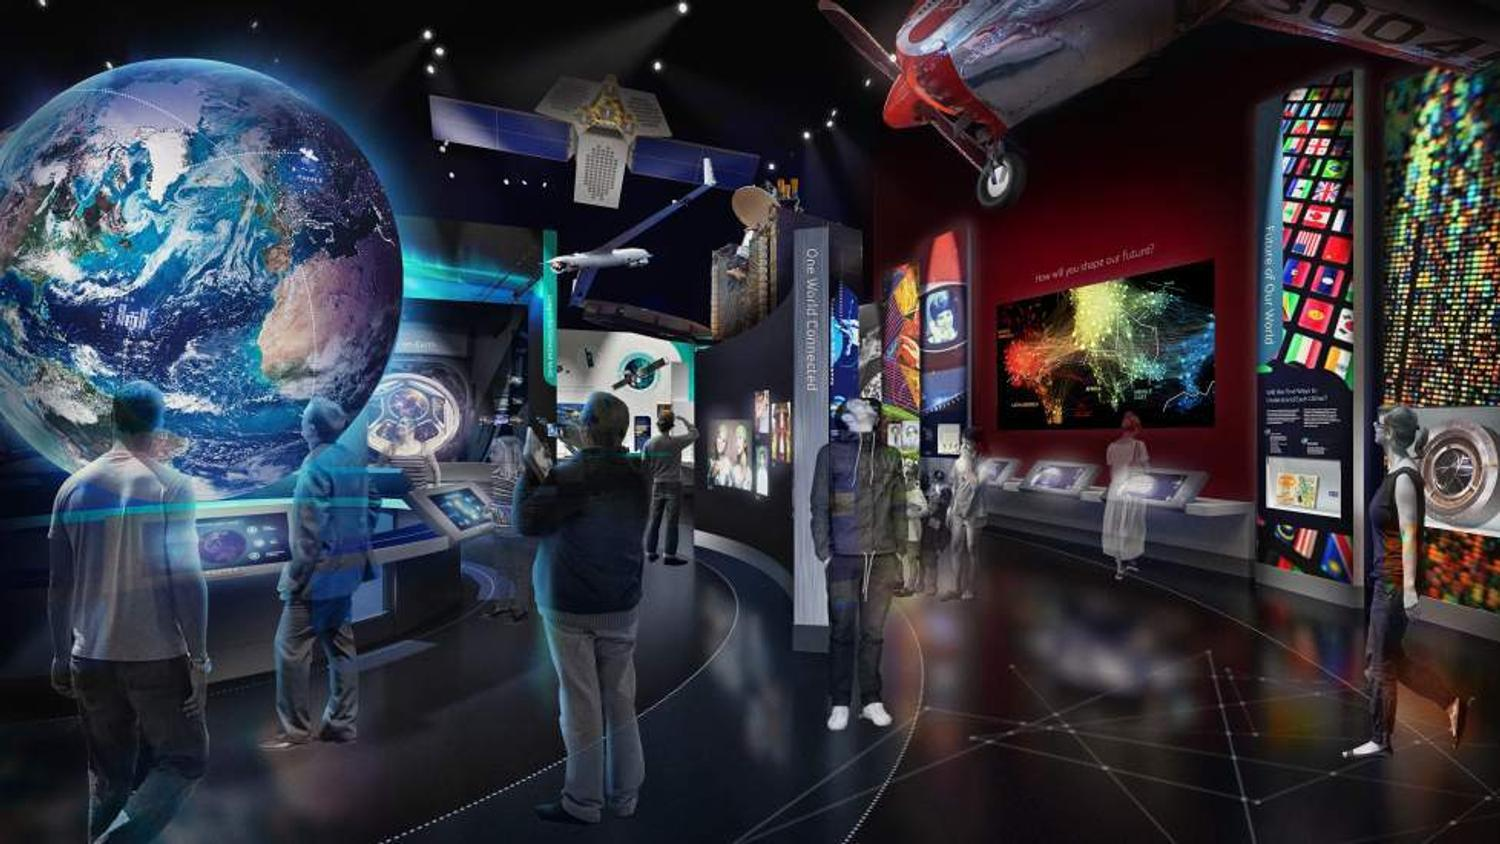 National Air And Space Museum To Undergo 900M Redo